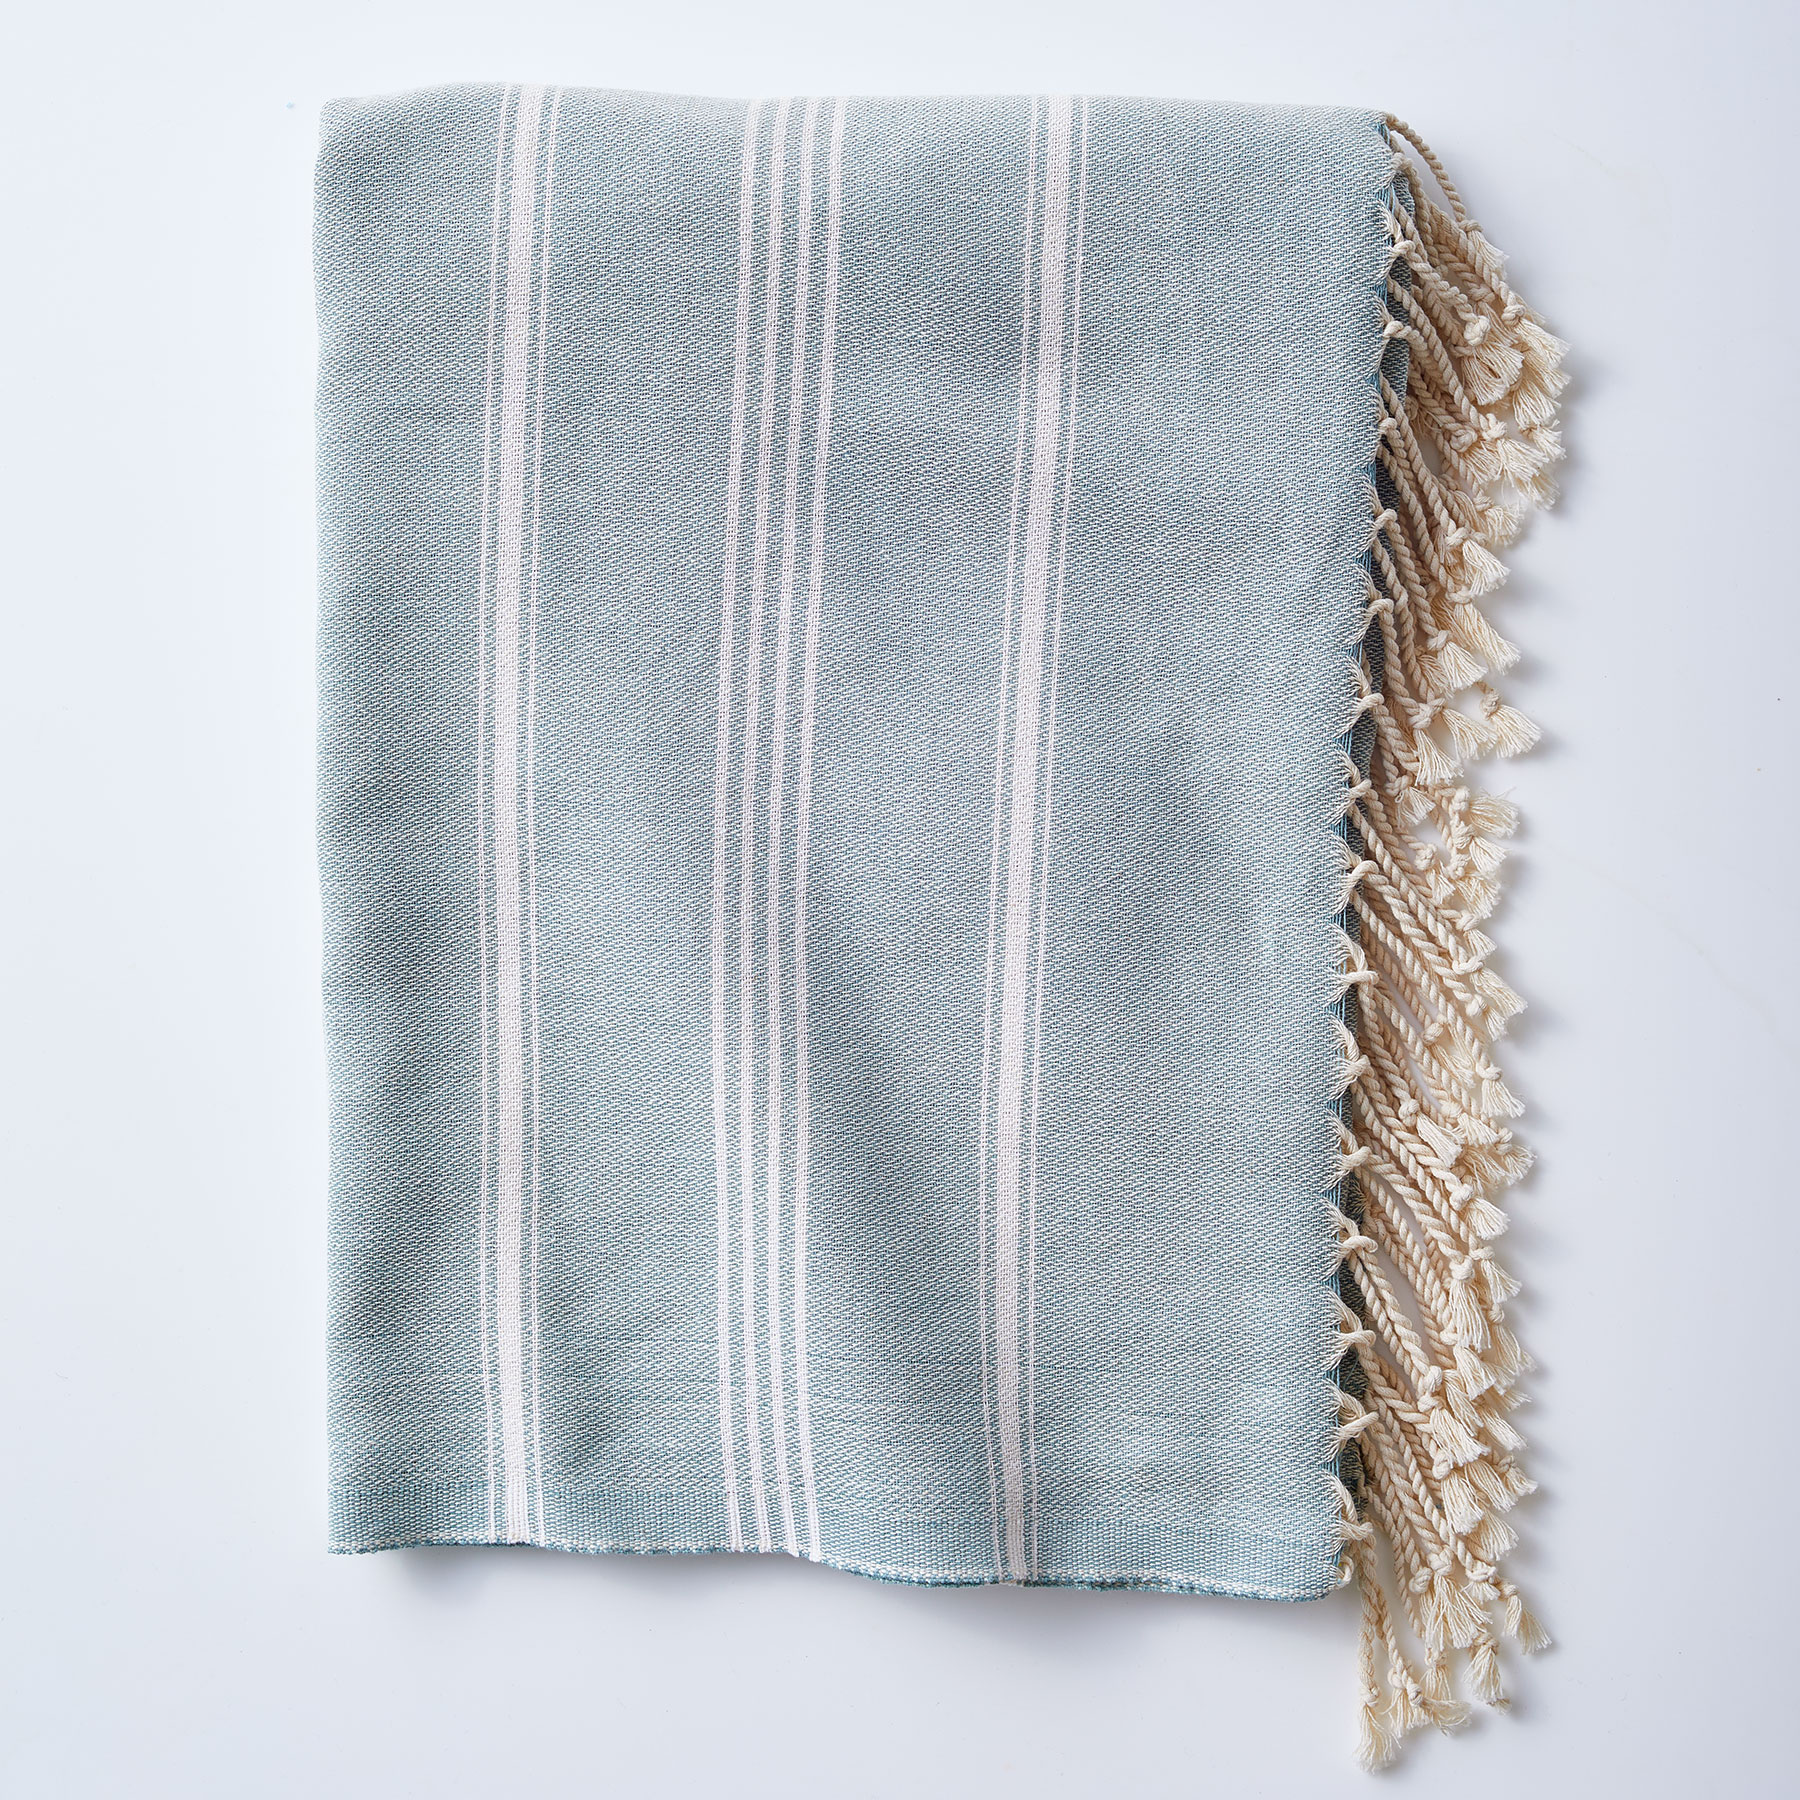 How to Pick the Best Bath Towels: Turkish Towel